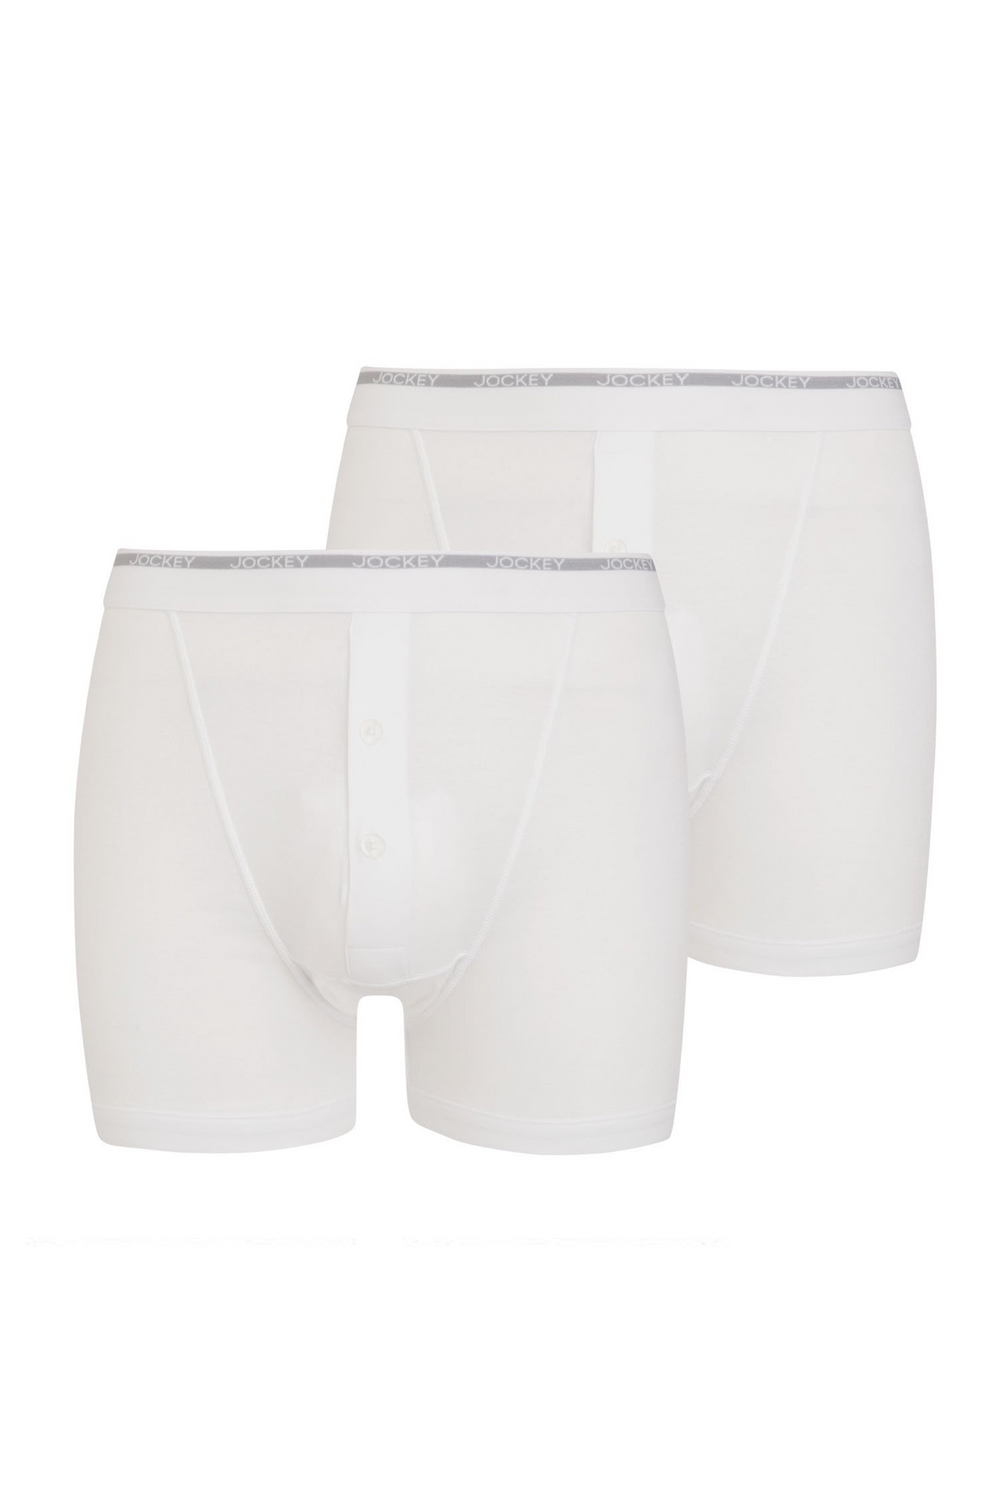 Jockey® Modern Classic Y-Front® Button Fly Boxer Trunk 2-Pack